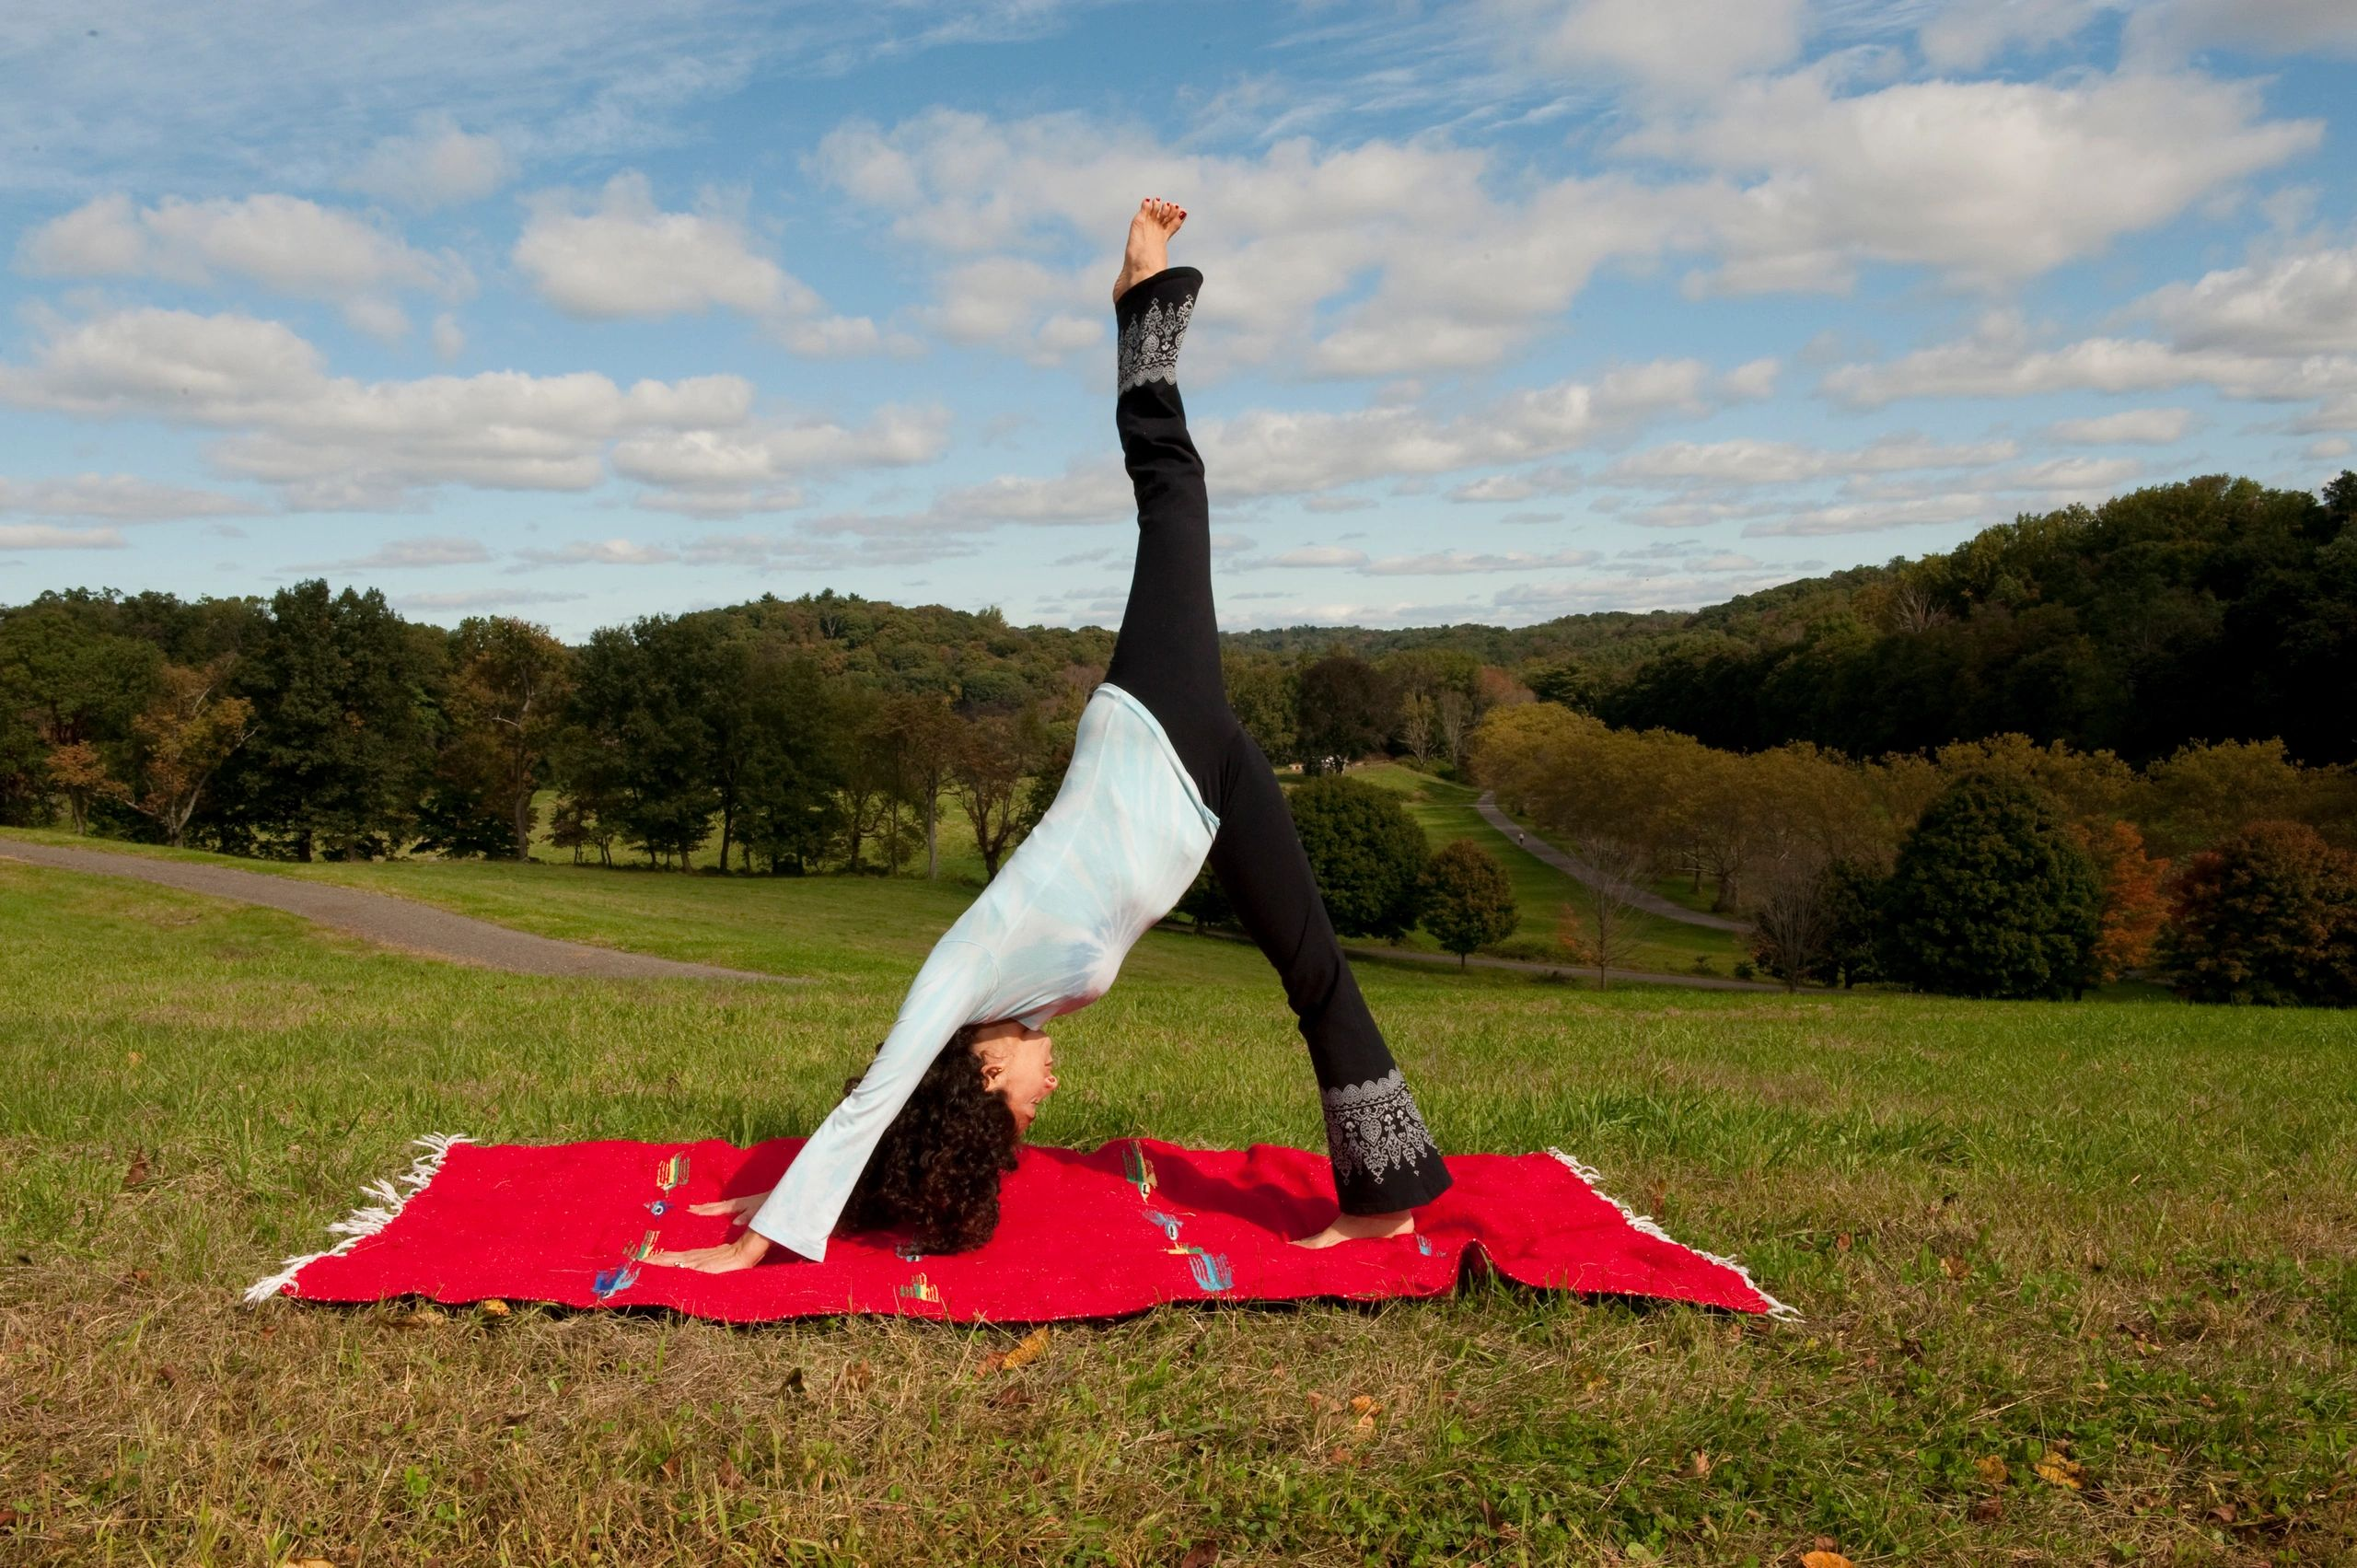 down dog split yoga pose outdoors under a blue sky